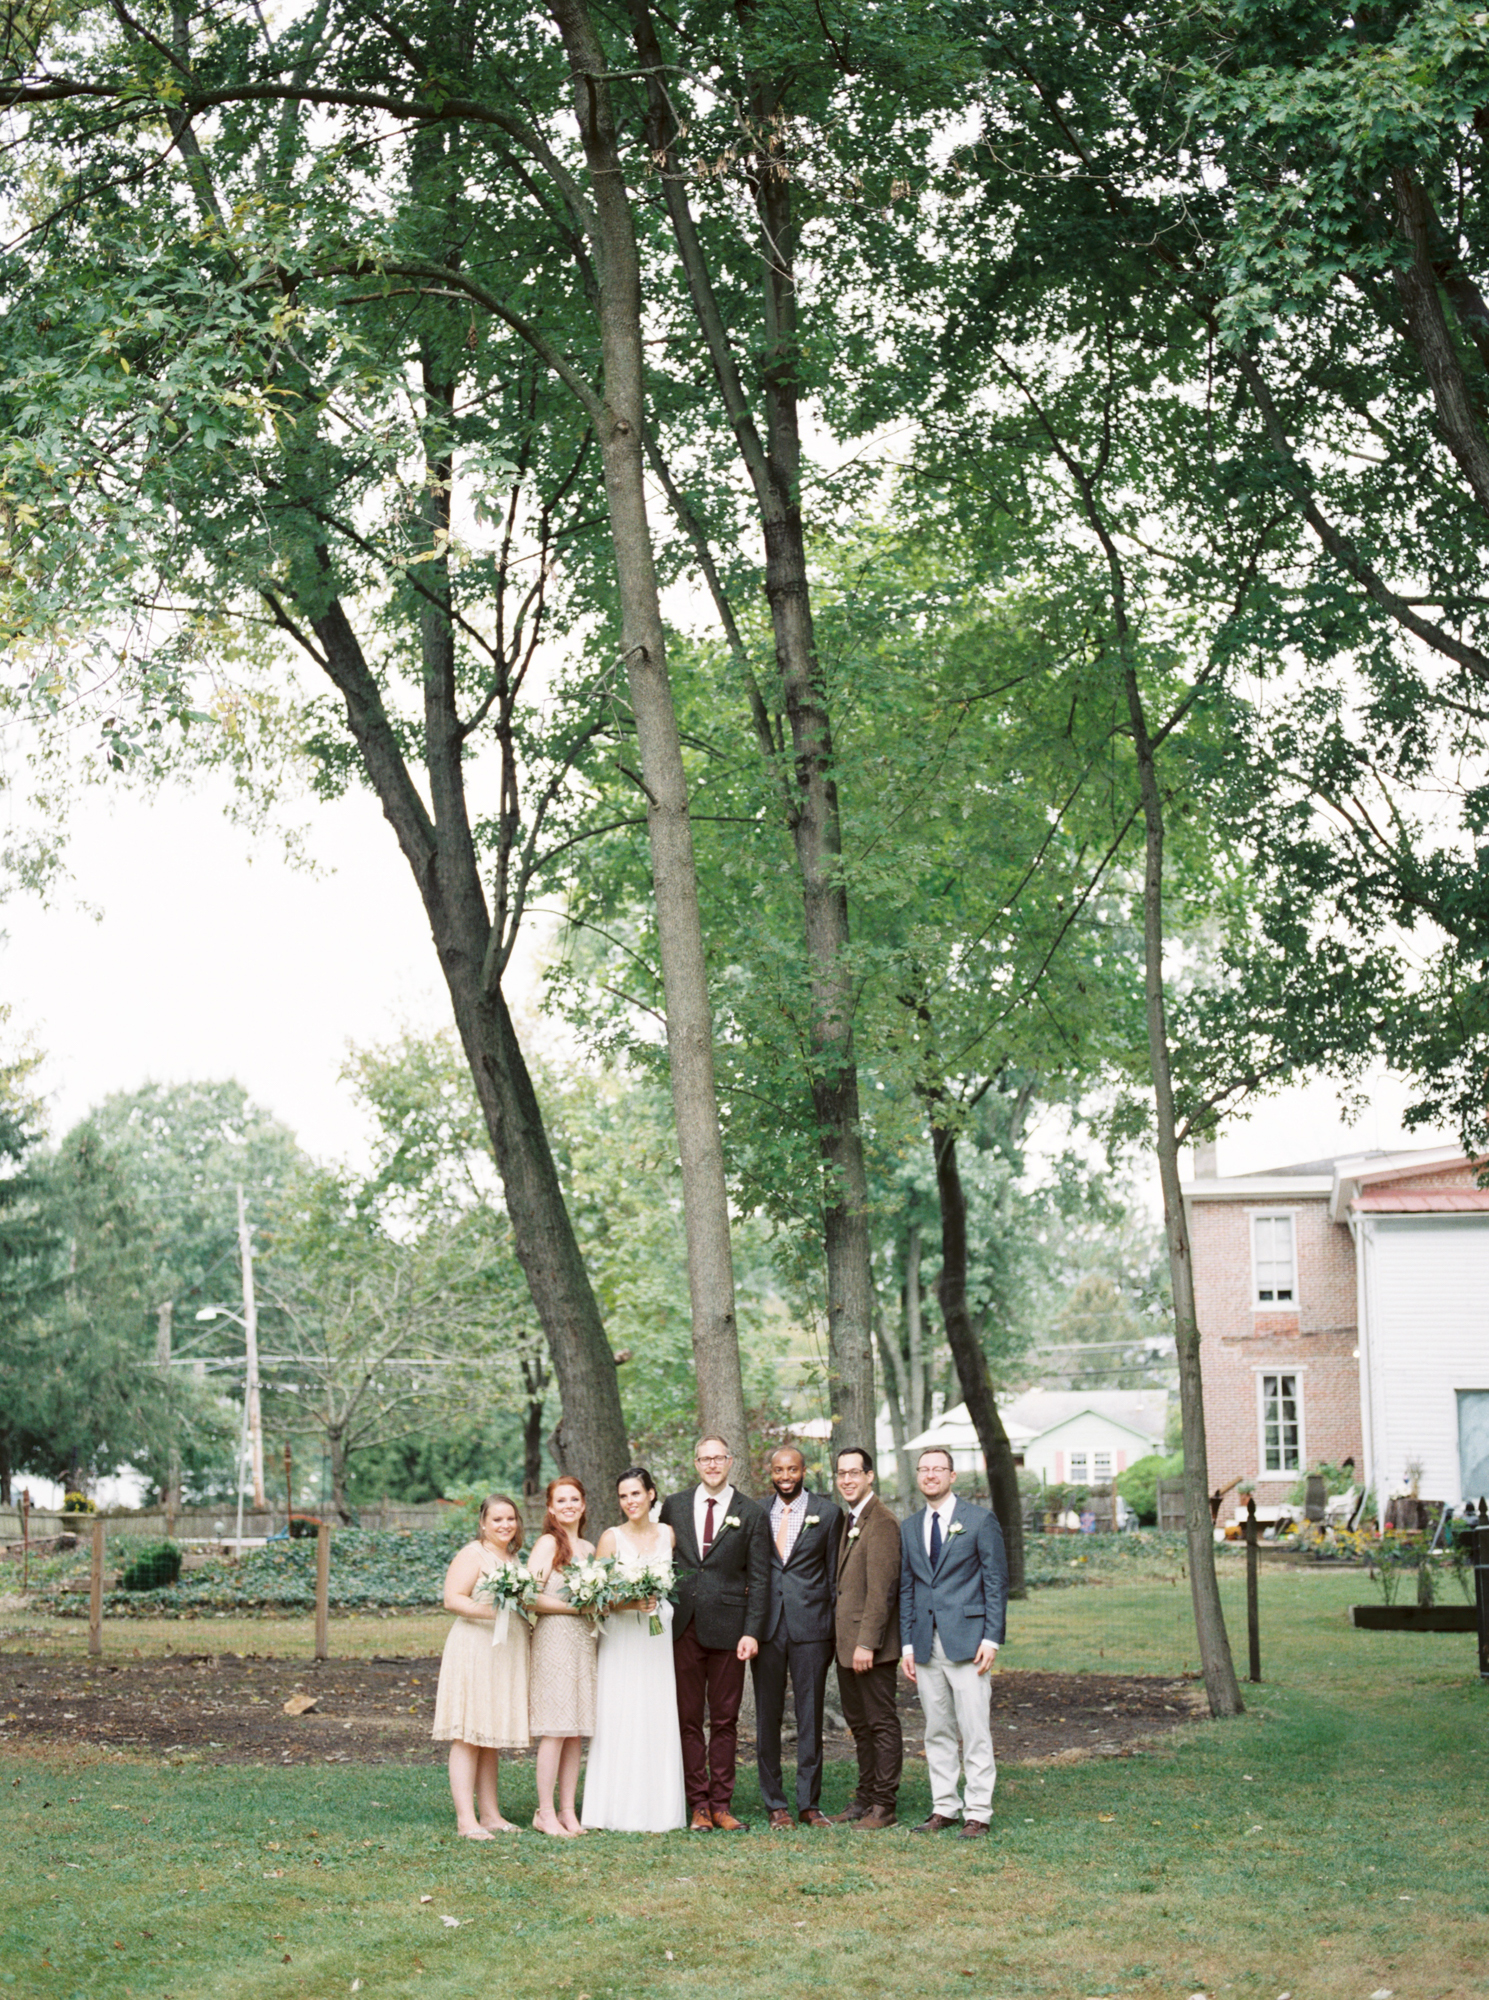 haley-richter-photography-new-jersey-backyard-wedding-212.jpg